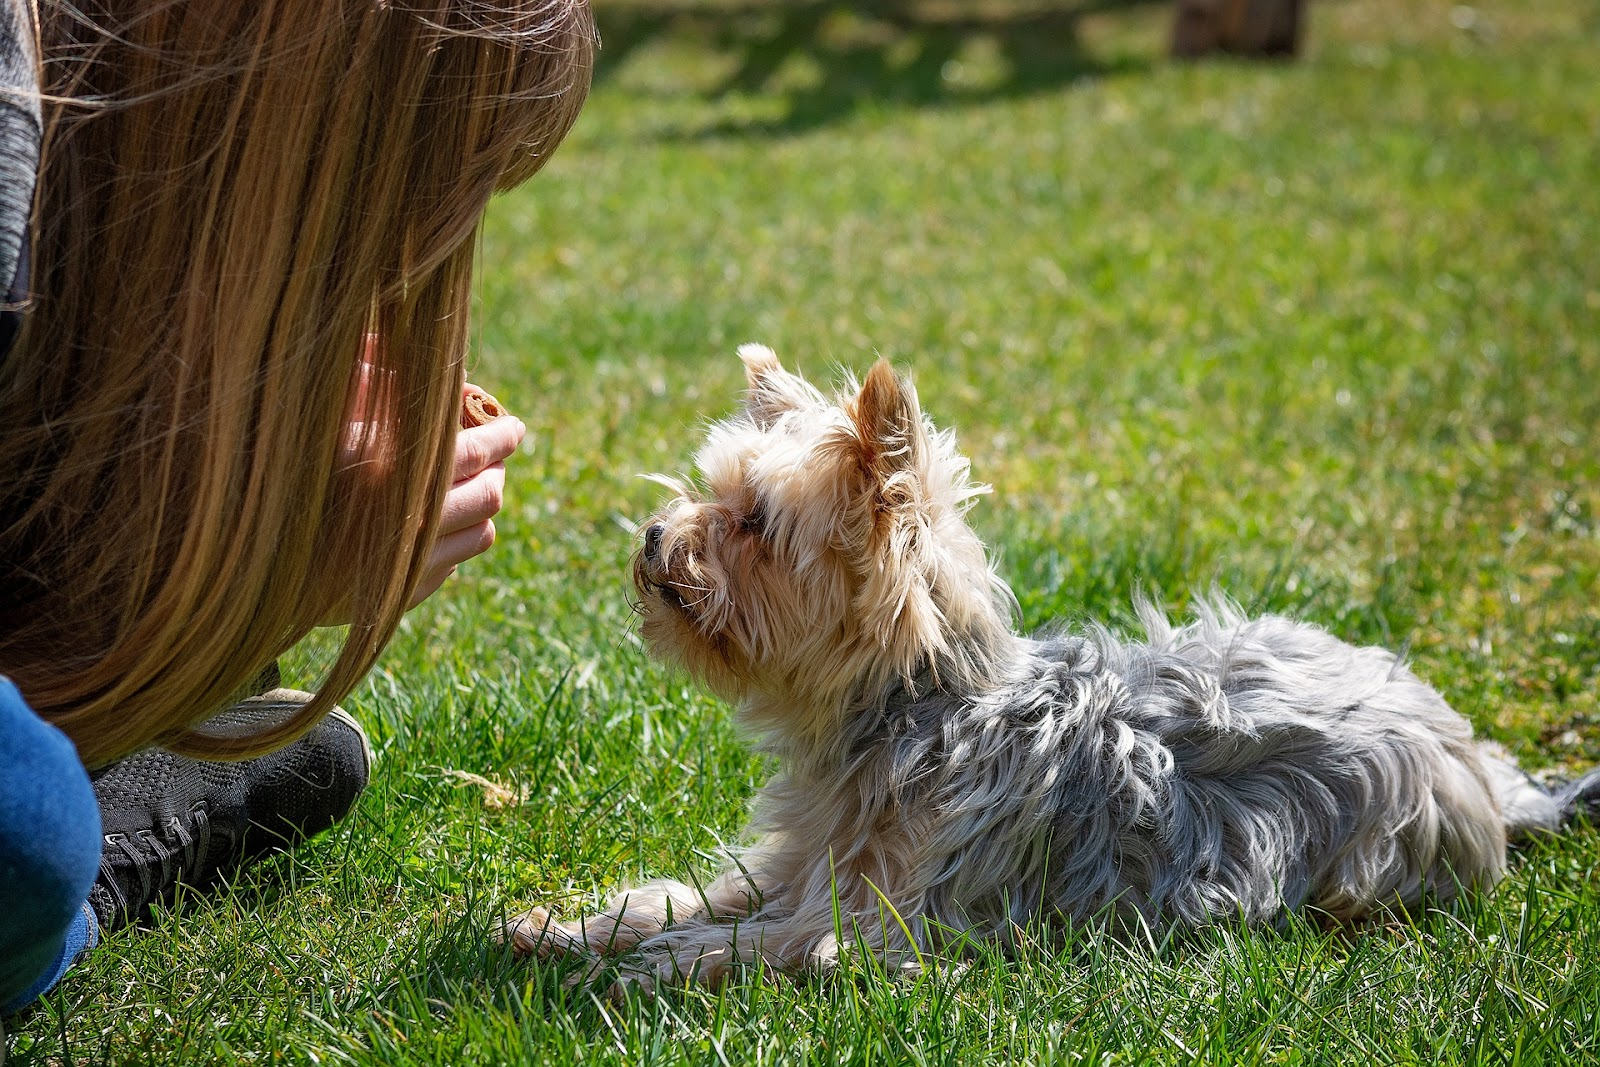 blonde girl training small dog patiently with small treats in grass